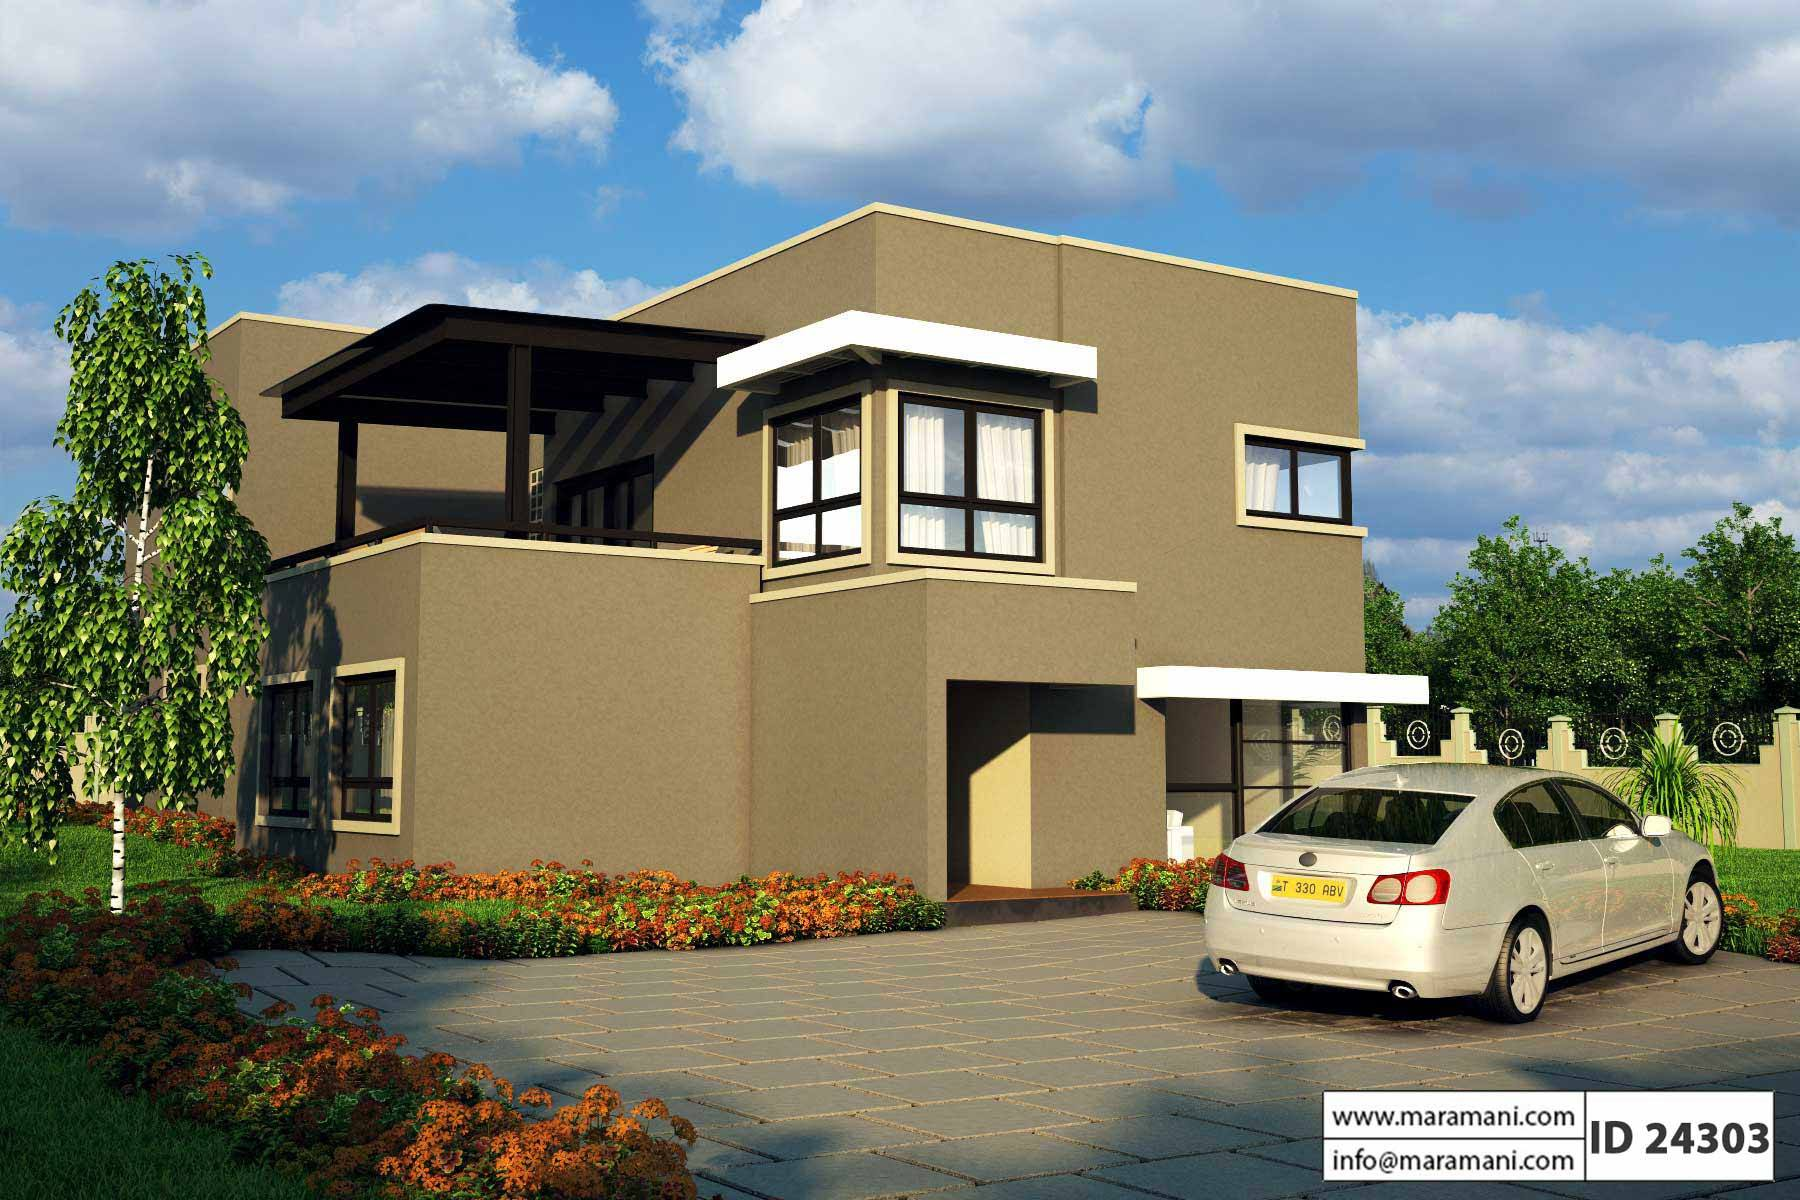 Charmant 4 Bedroom House Design   ID 24303   House Plans By Maramani